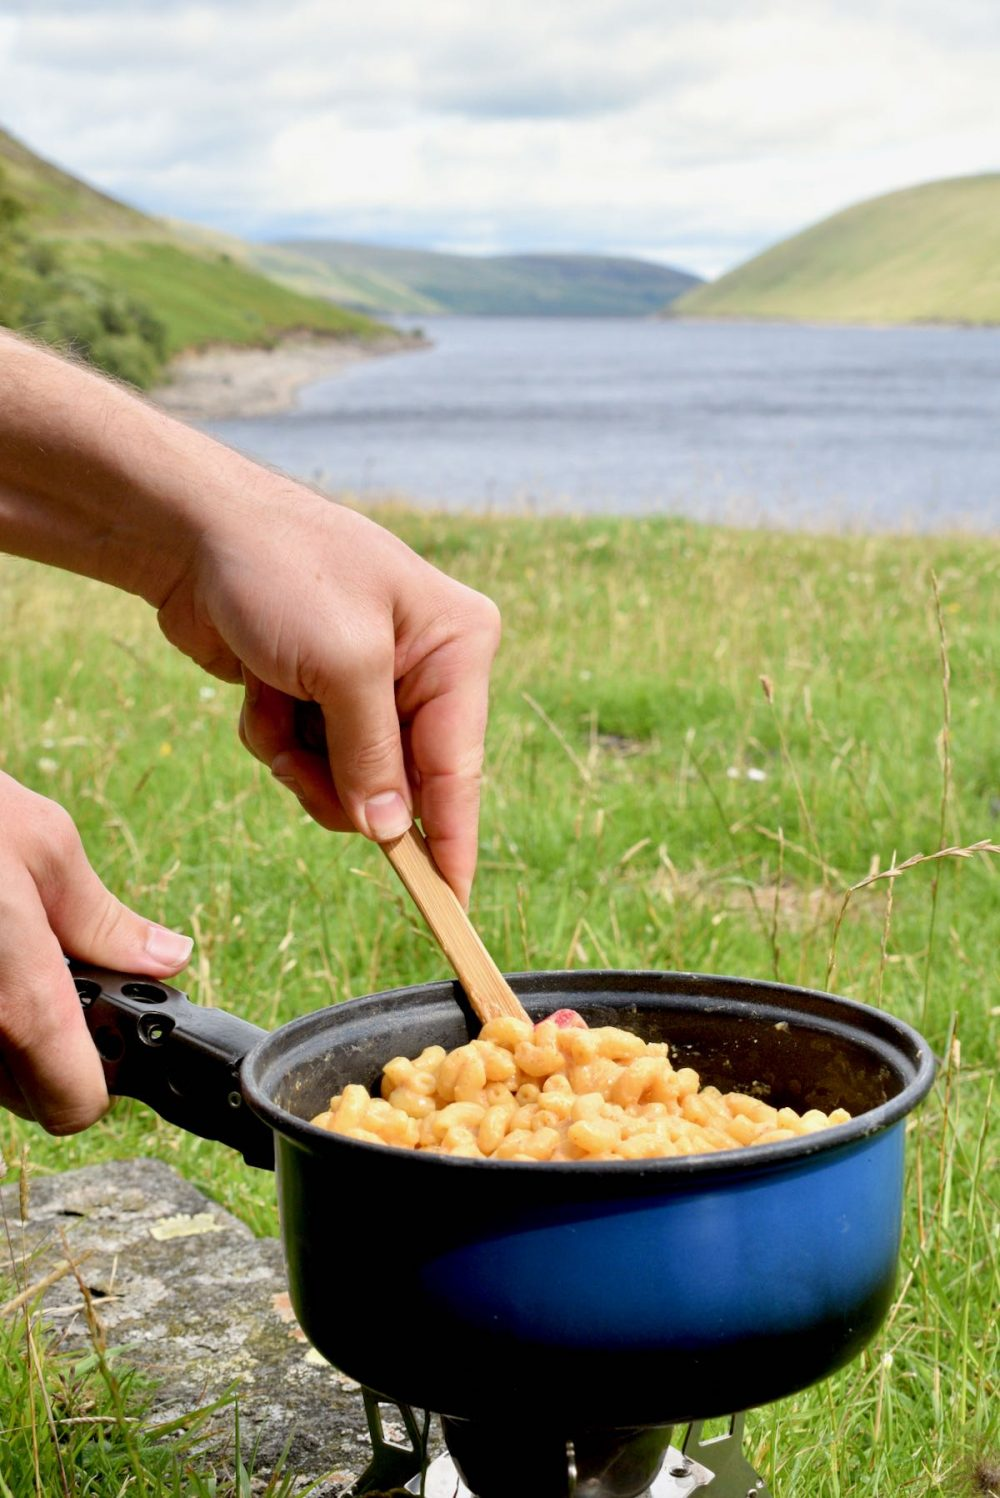 Cooking the mac and cheese on a camping stove. Hills and a lake in the background.